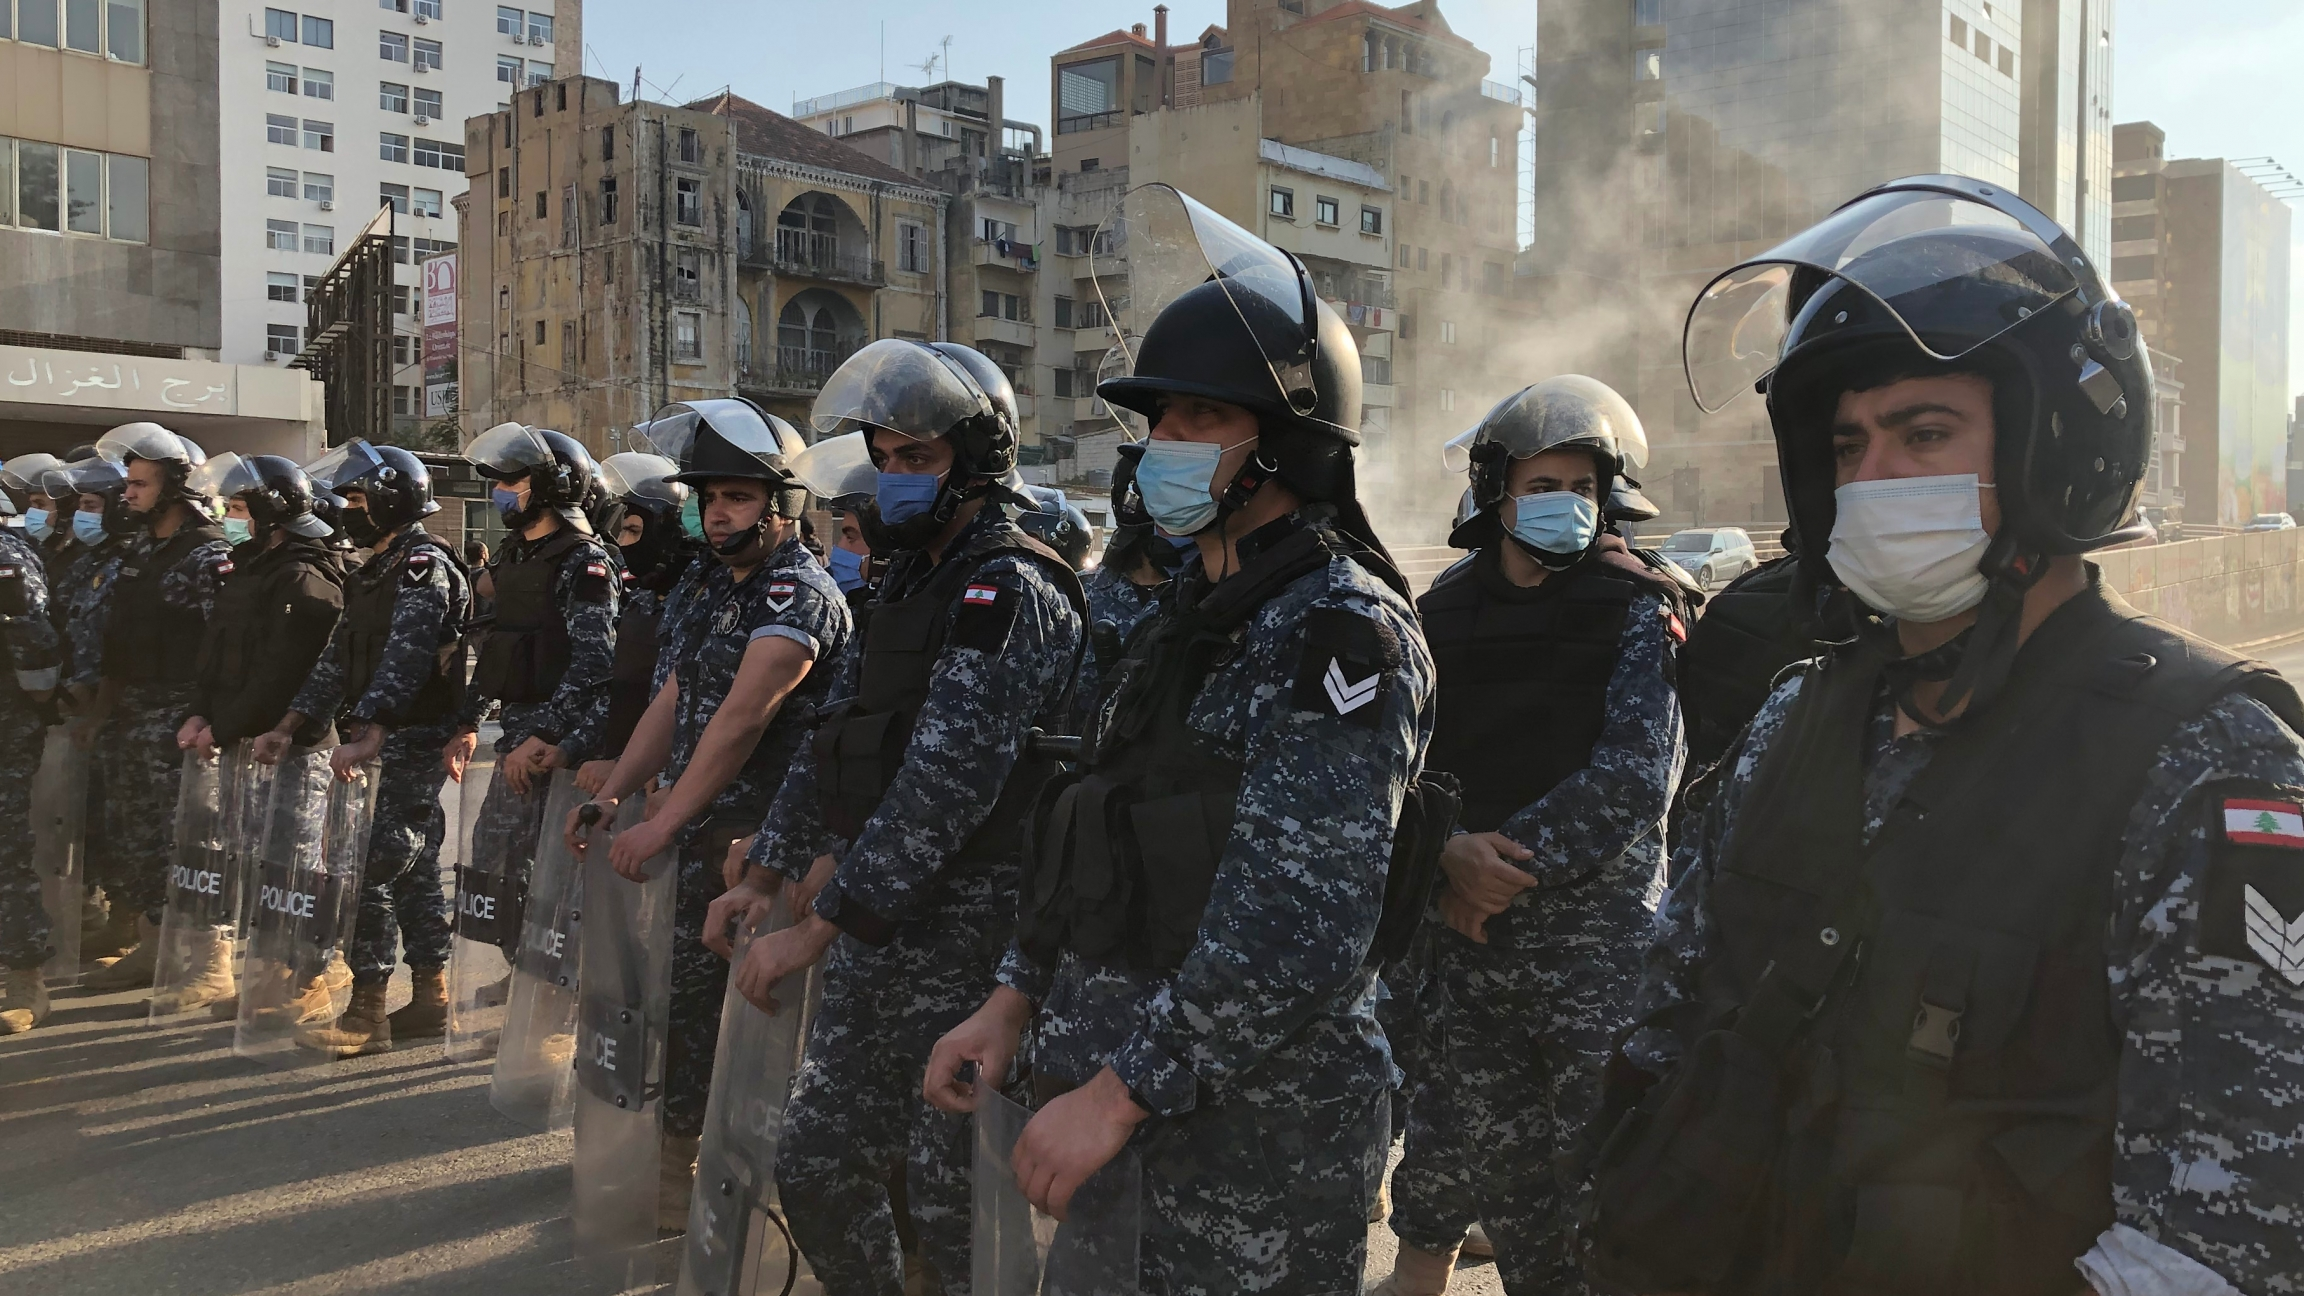 People in military uniform wear face masks while they form a line on a Beirut street during protest.